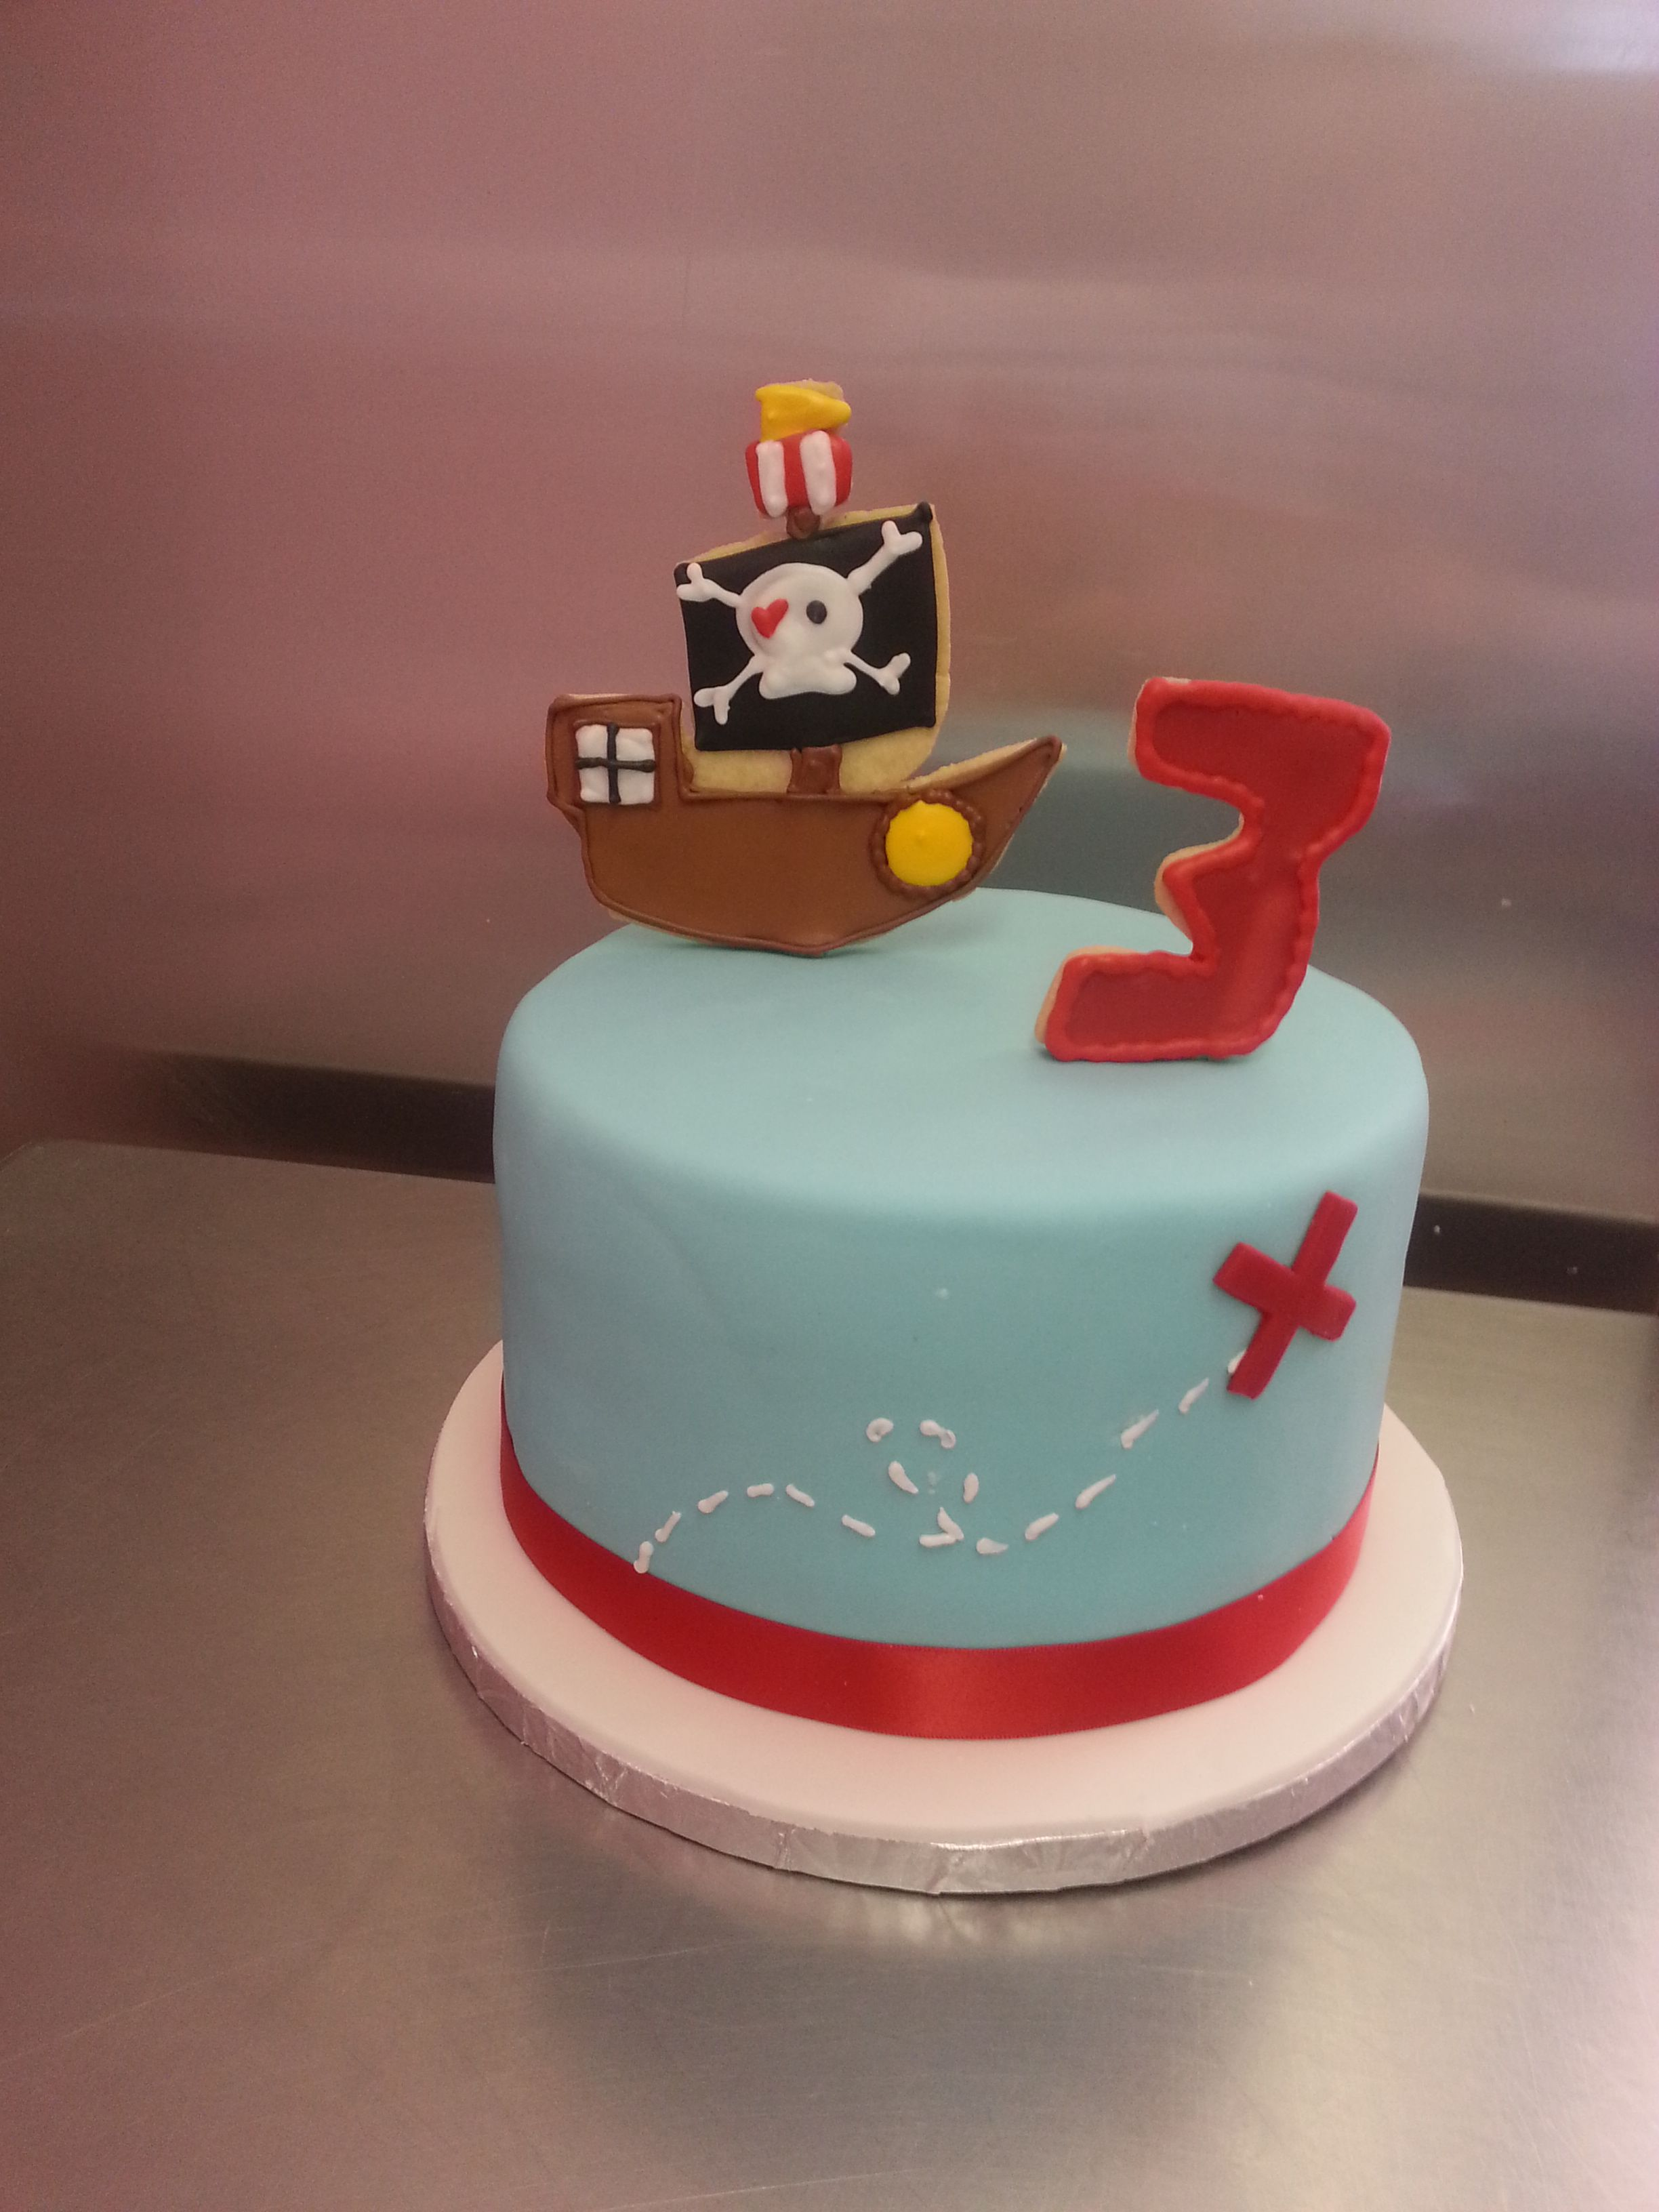 Ahoy x marks the spot on our pirate cake birthday cake